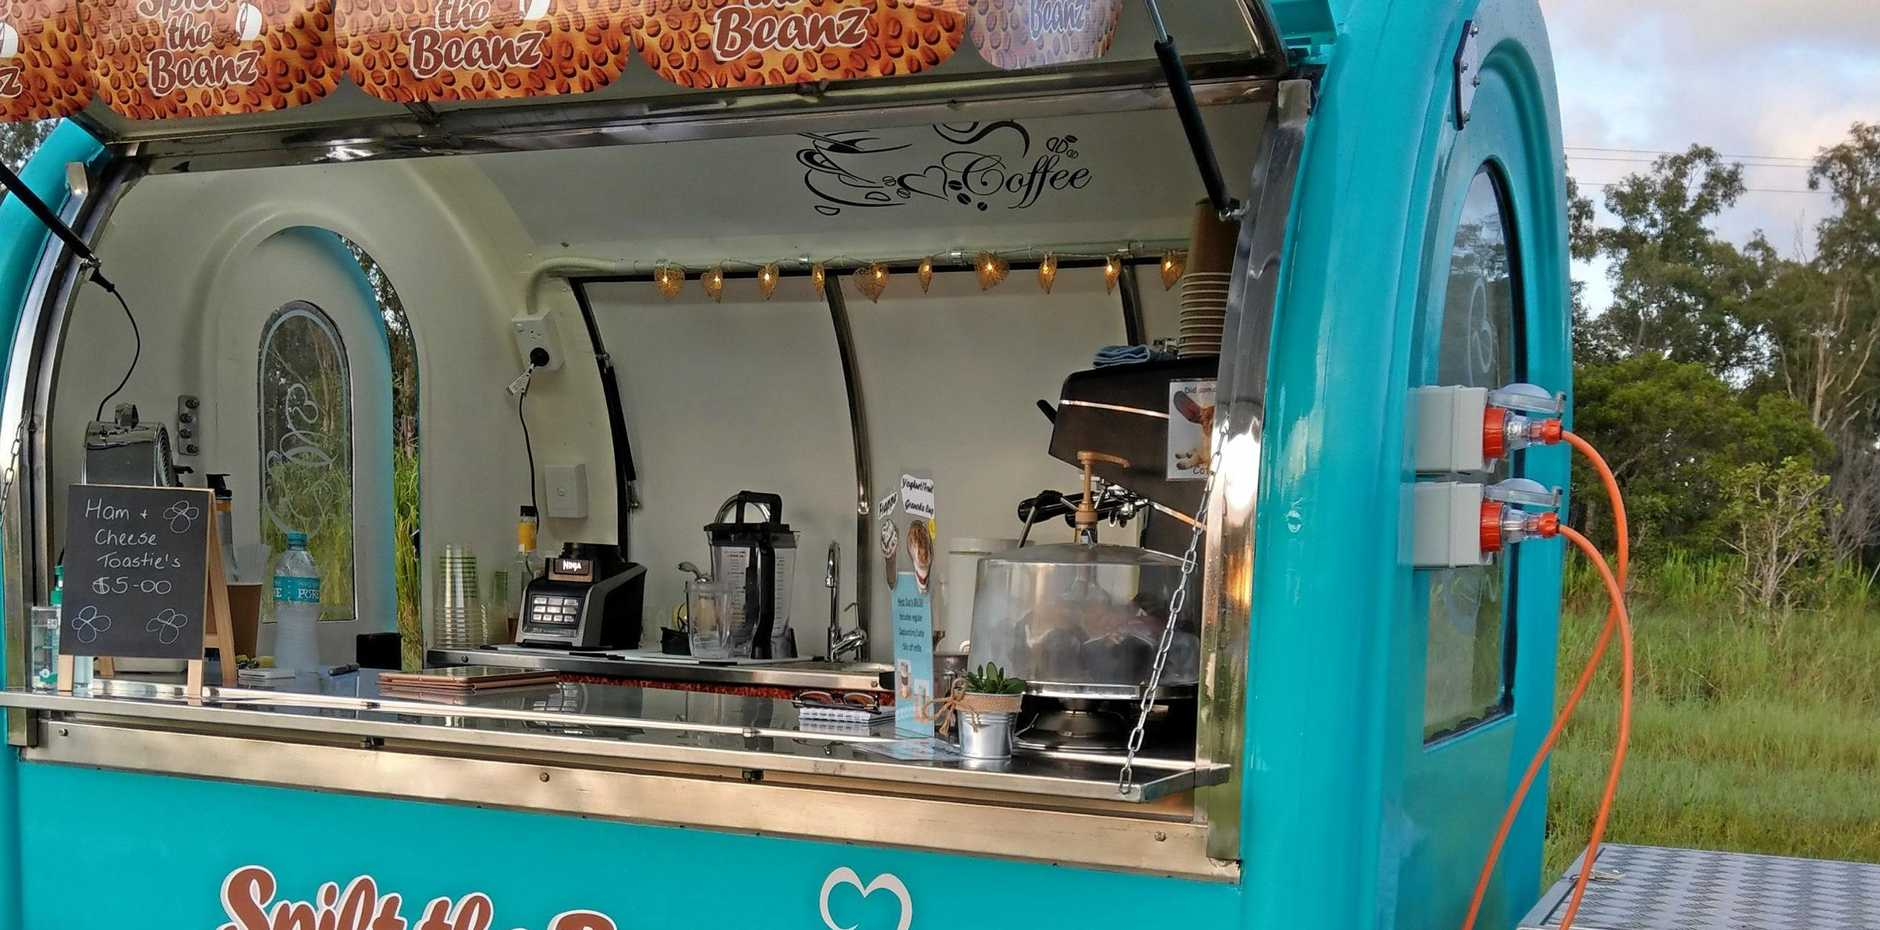 You can stop at Spilt the Beanz on Monday and Friday, from 5.30-9.30am to get your coffee fix before work.